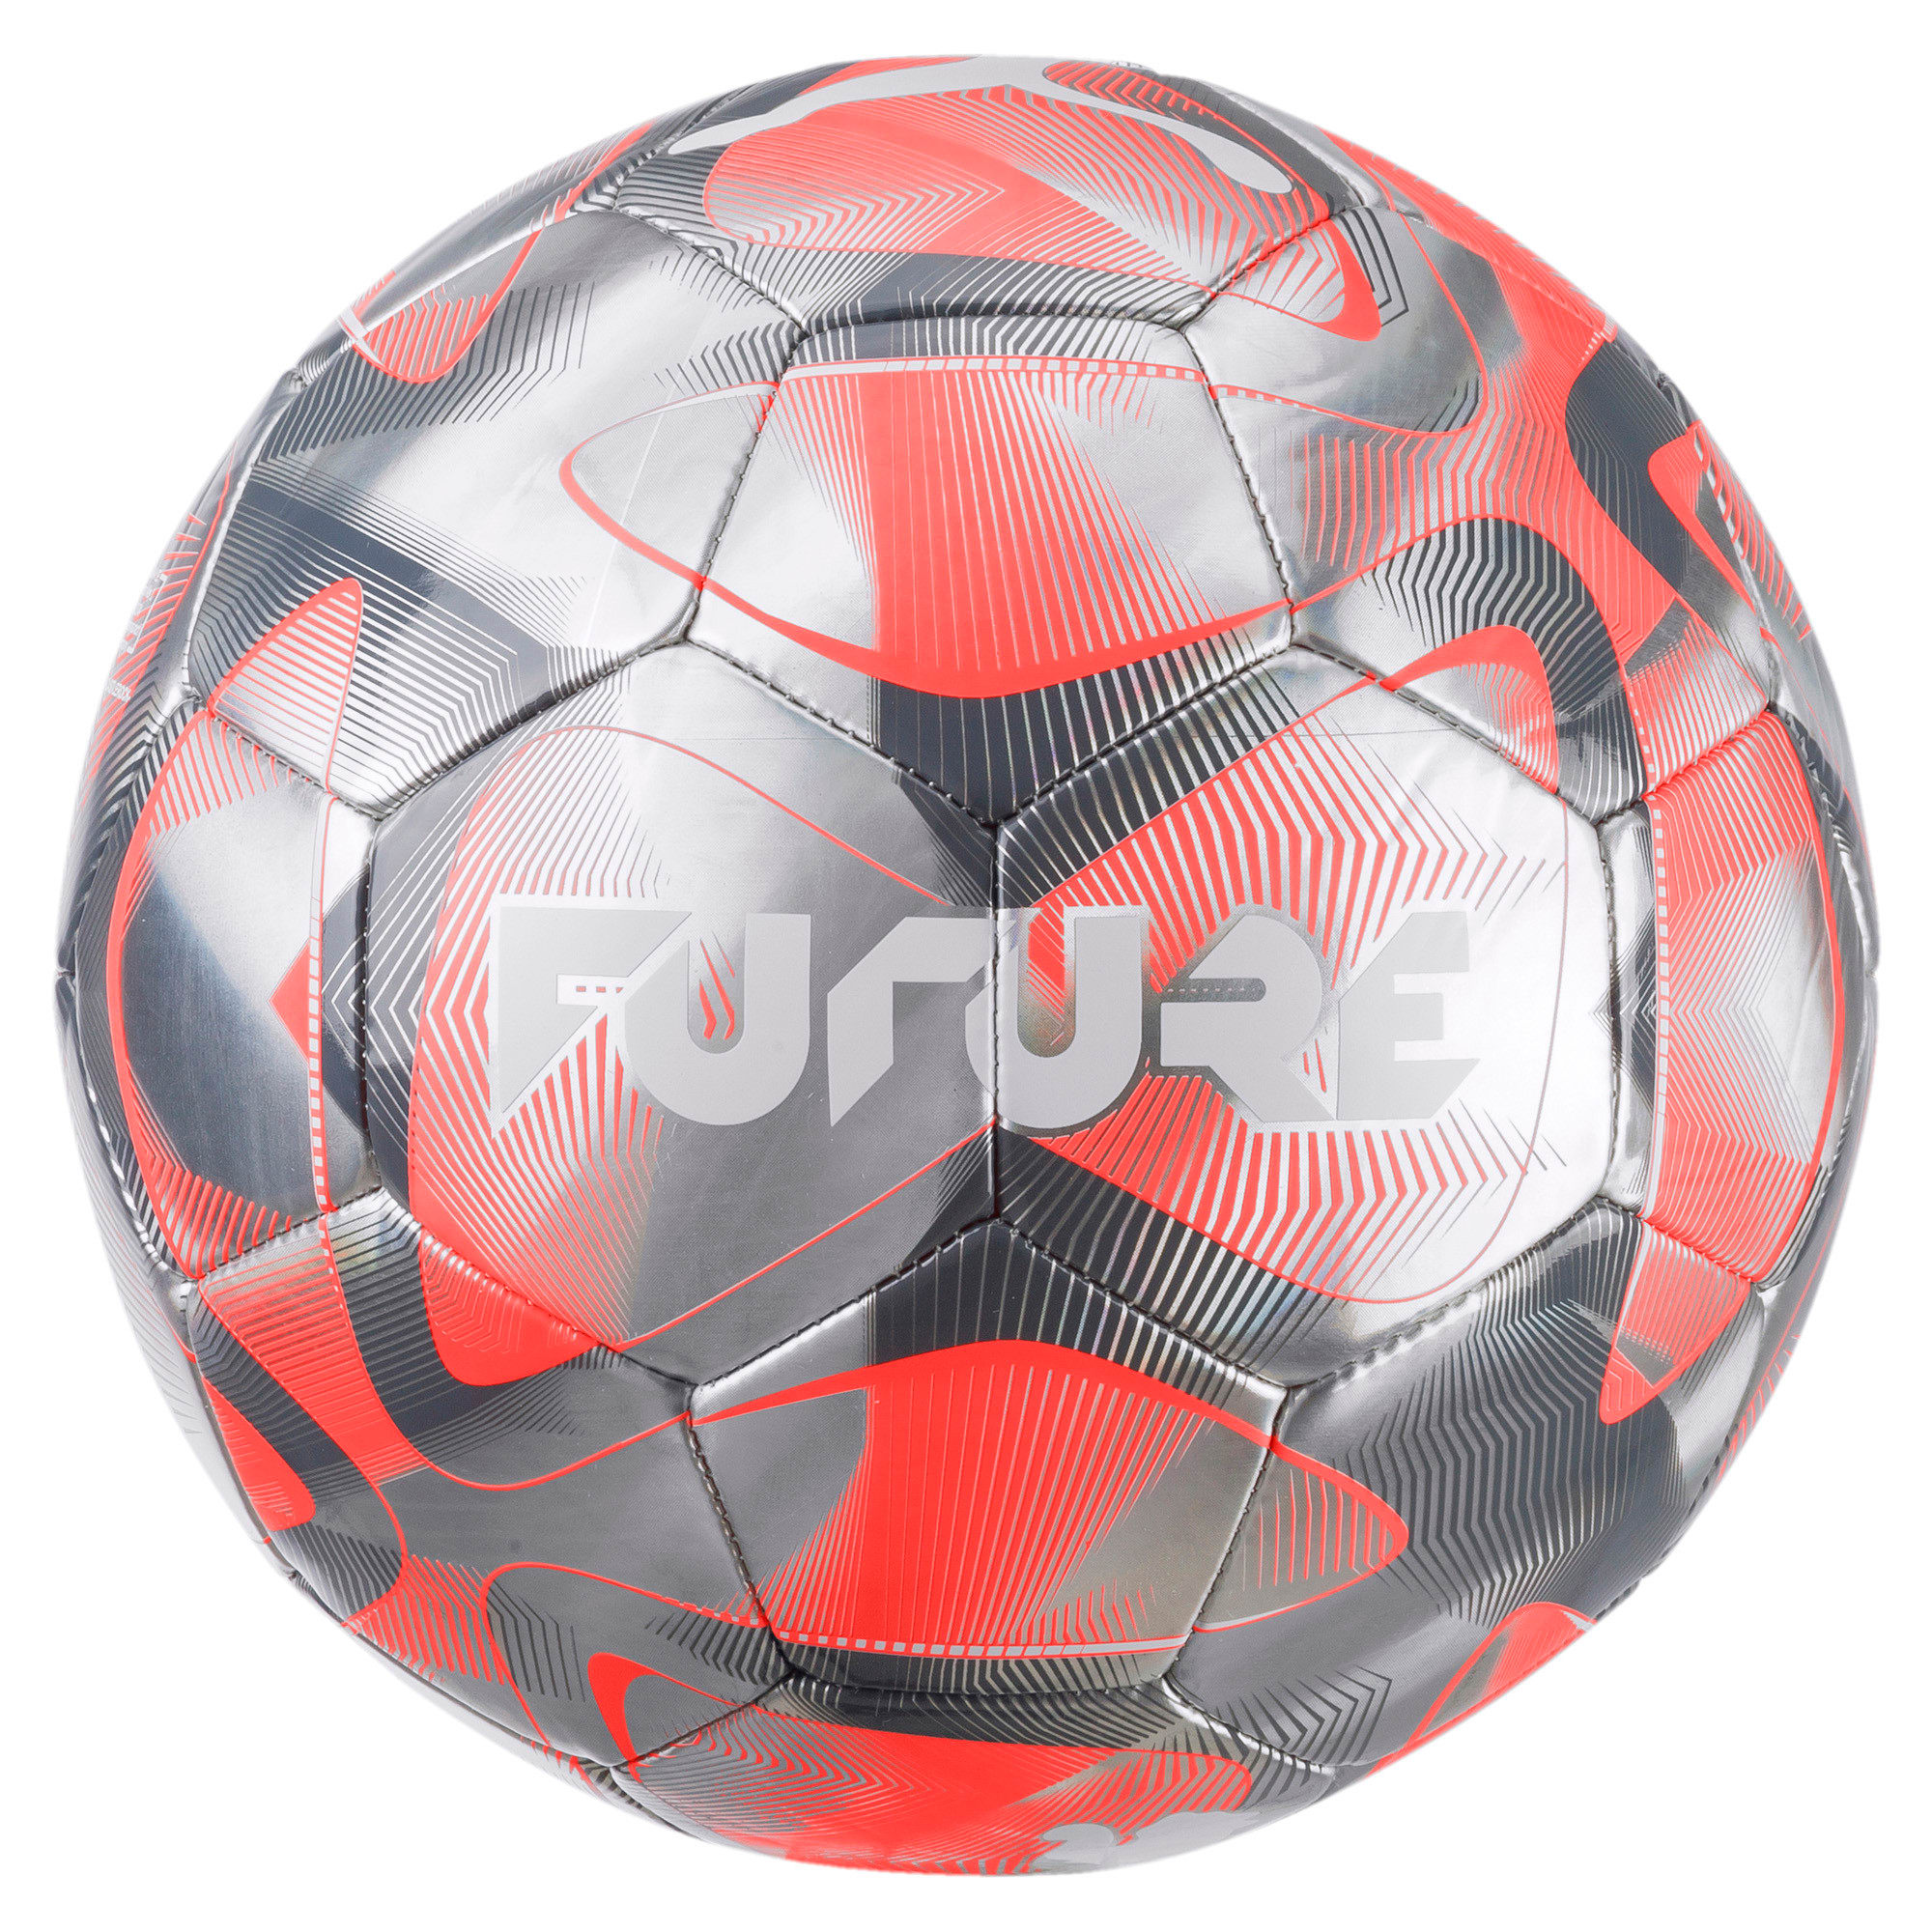 Thumbnail 1 of FUTURE Flash Soccer Ball, Grey-Nrgy Red-CASTLE-White, medium